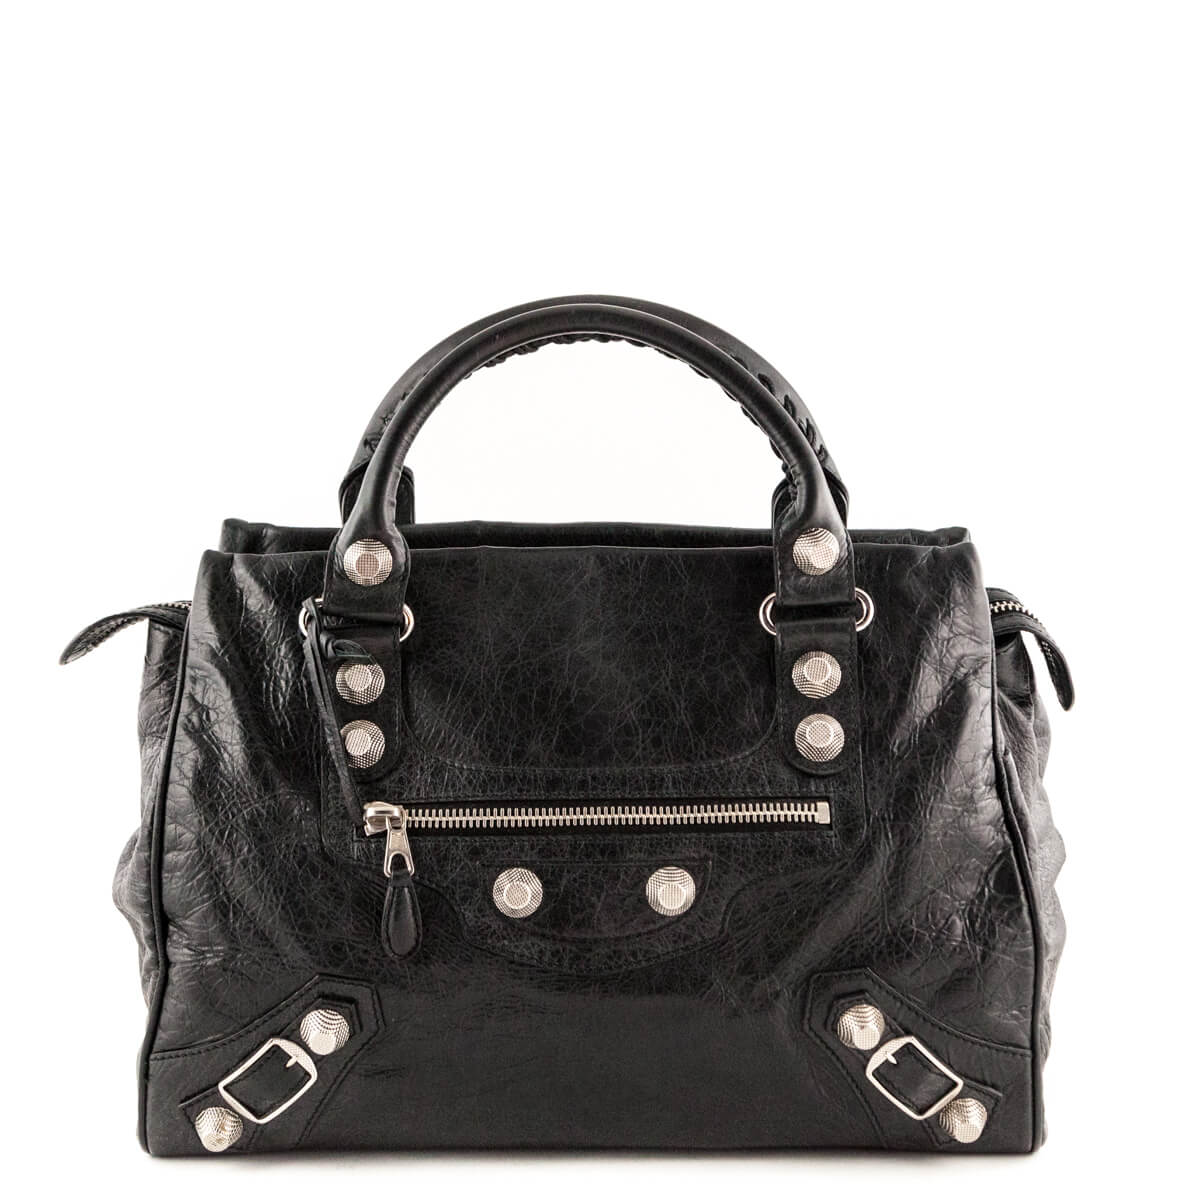 bc6eaa20230f Balenciaga Black Lambskin Giant 21 Midday Silver - LOVE that BAG - Preowned  Authentic Designer Handbags ...